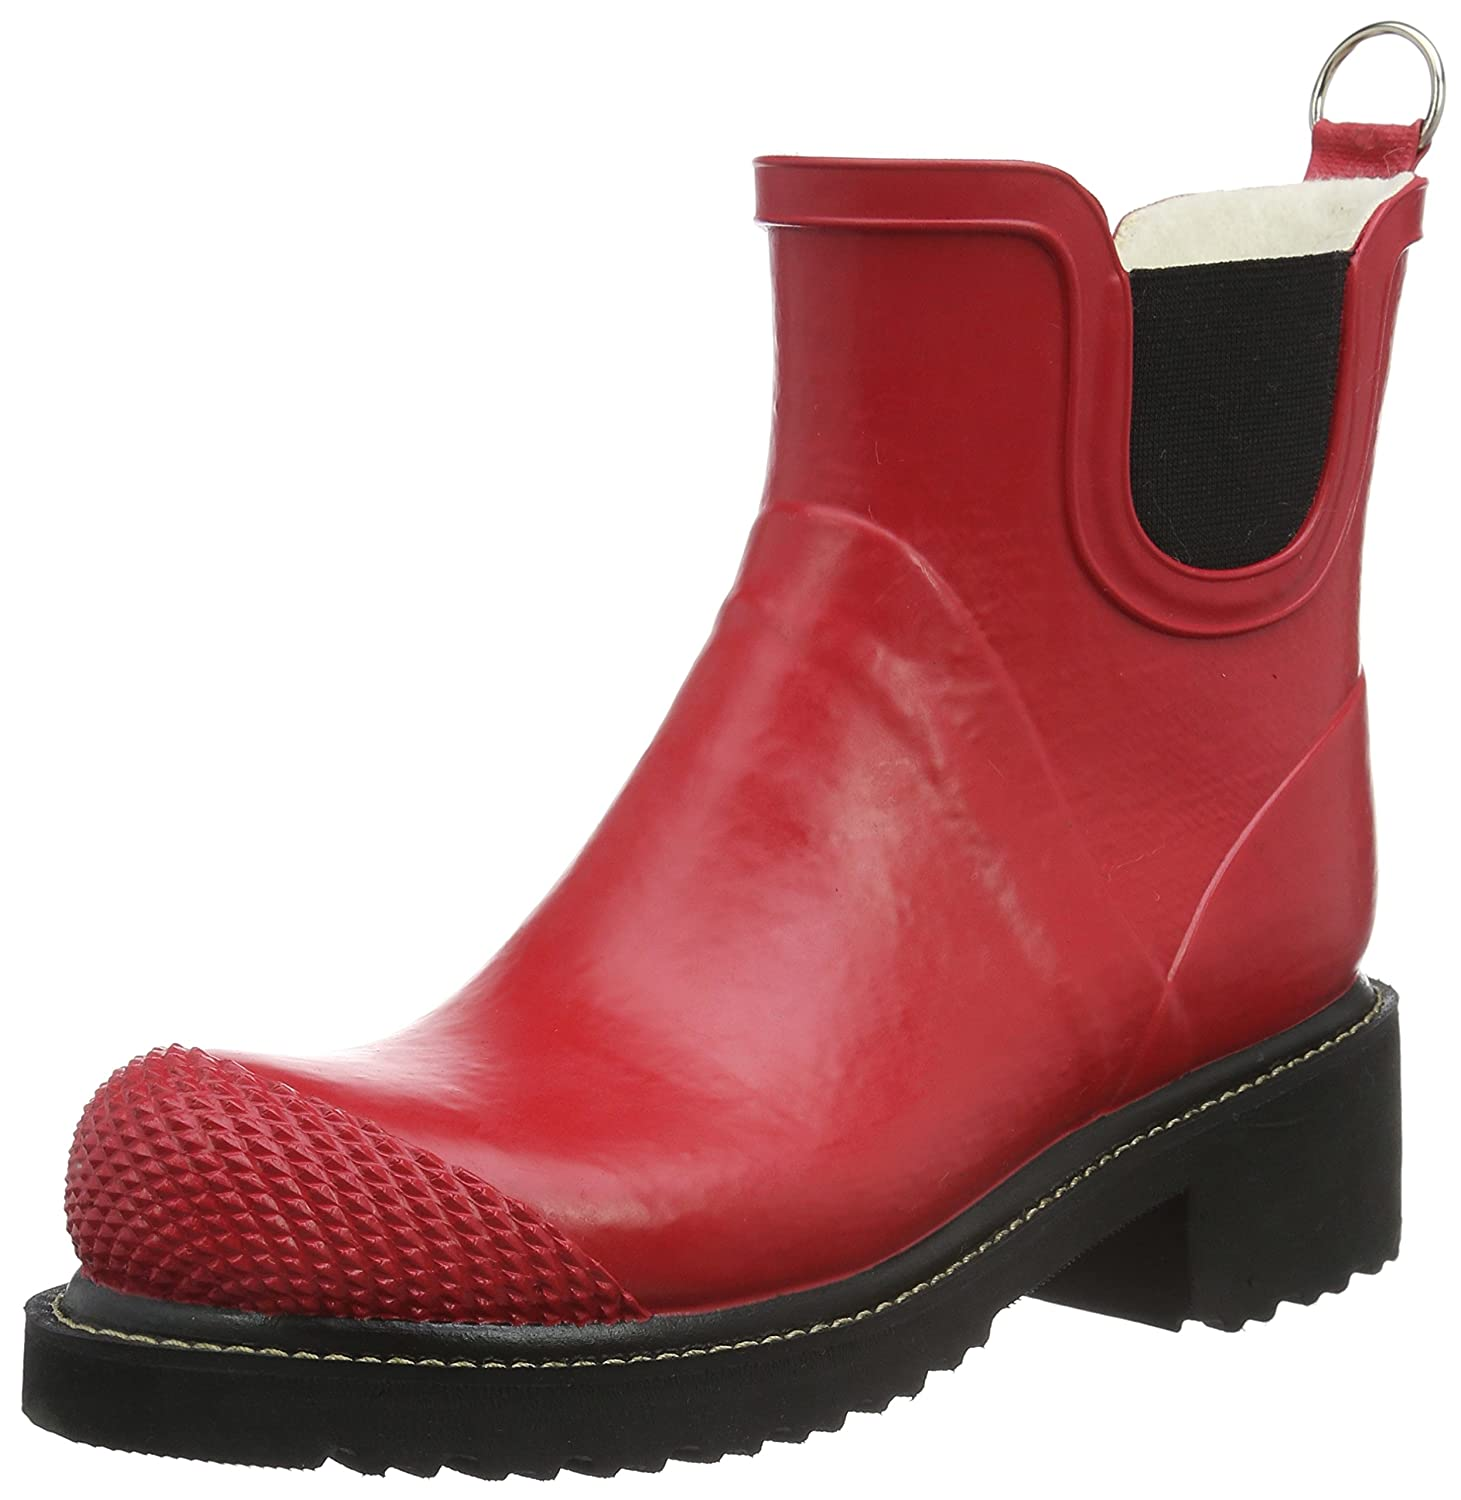 ILSE JACOBSEN Women's Rub 47 Rain Boot B01FMRWX14 40 EU / 10-10.5 B(M) US|Red